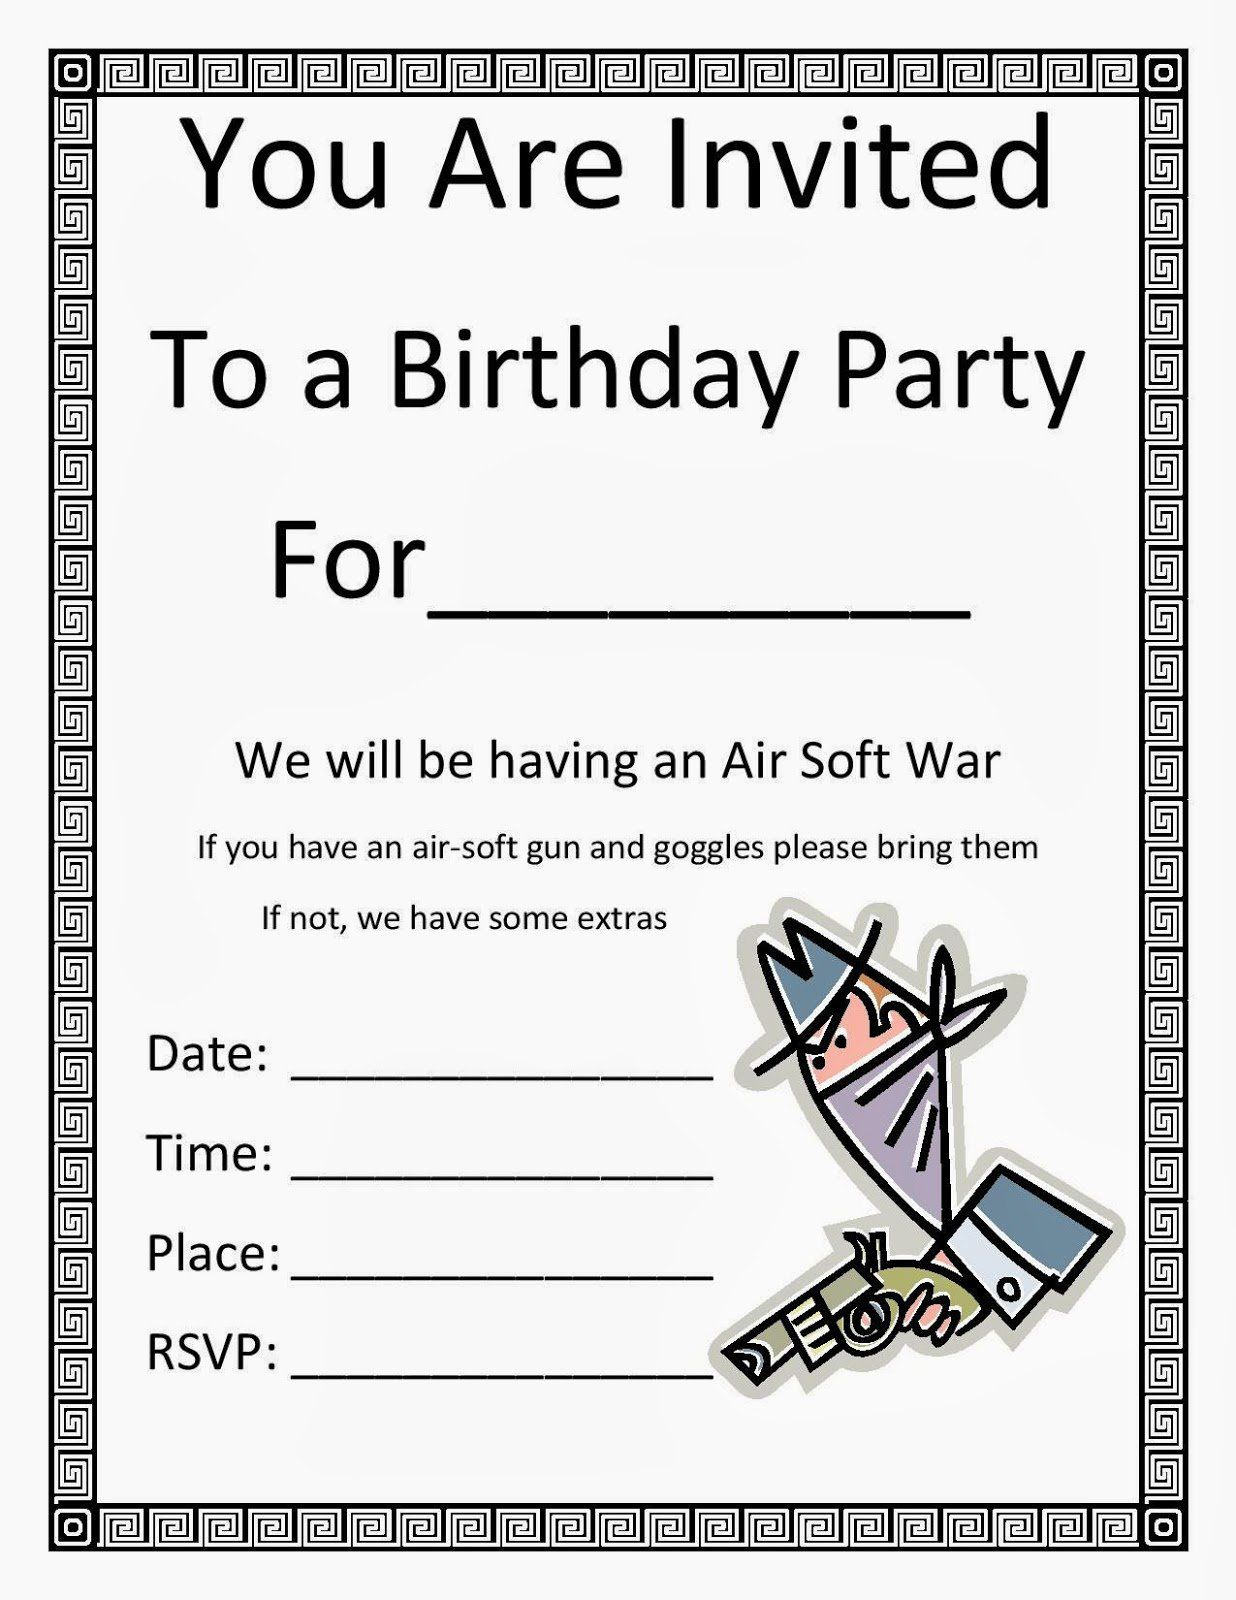 Birthday Party Invitation Templates Microsoft Word Party Invite Template Free Birthday Invitation Templates Boy Birthday Party Invitations